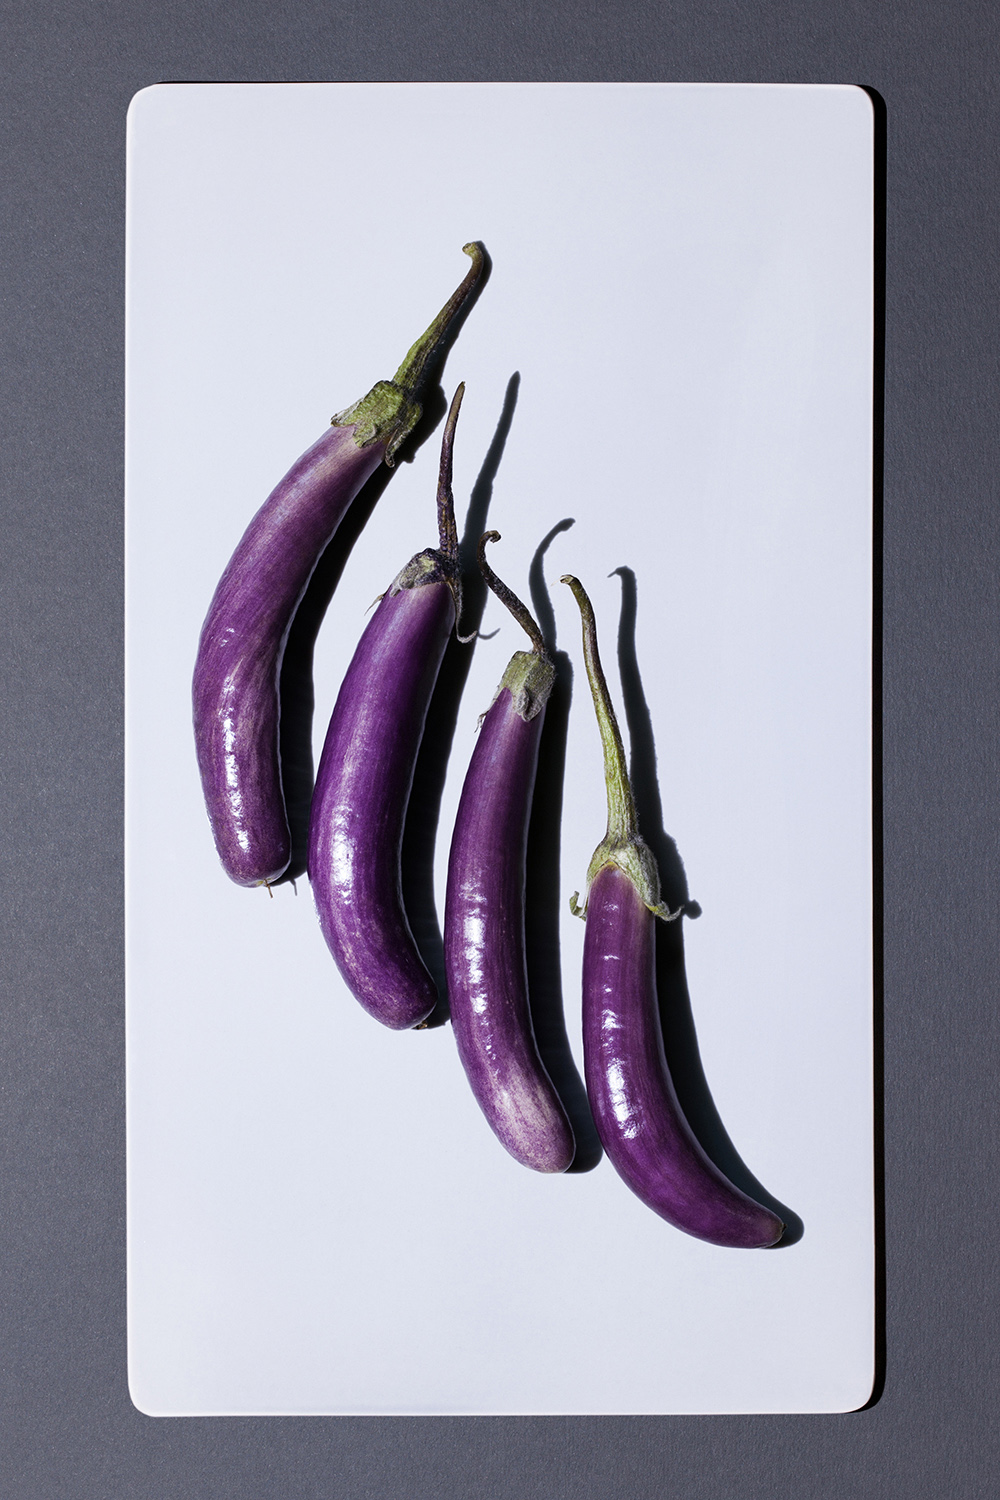 aubergine_mini_group_2132.jpg